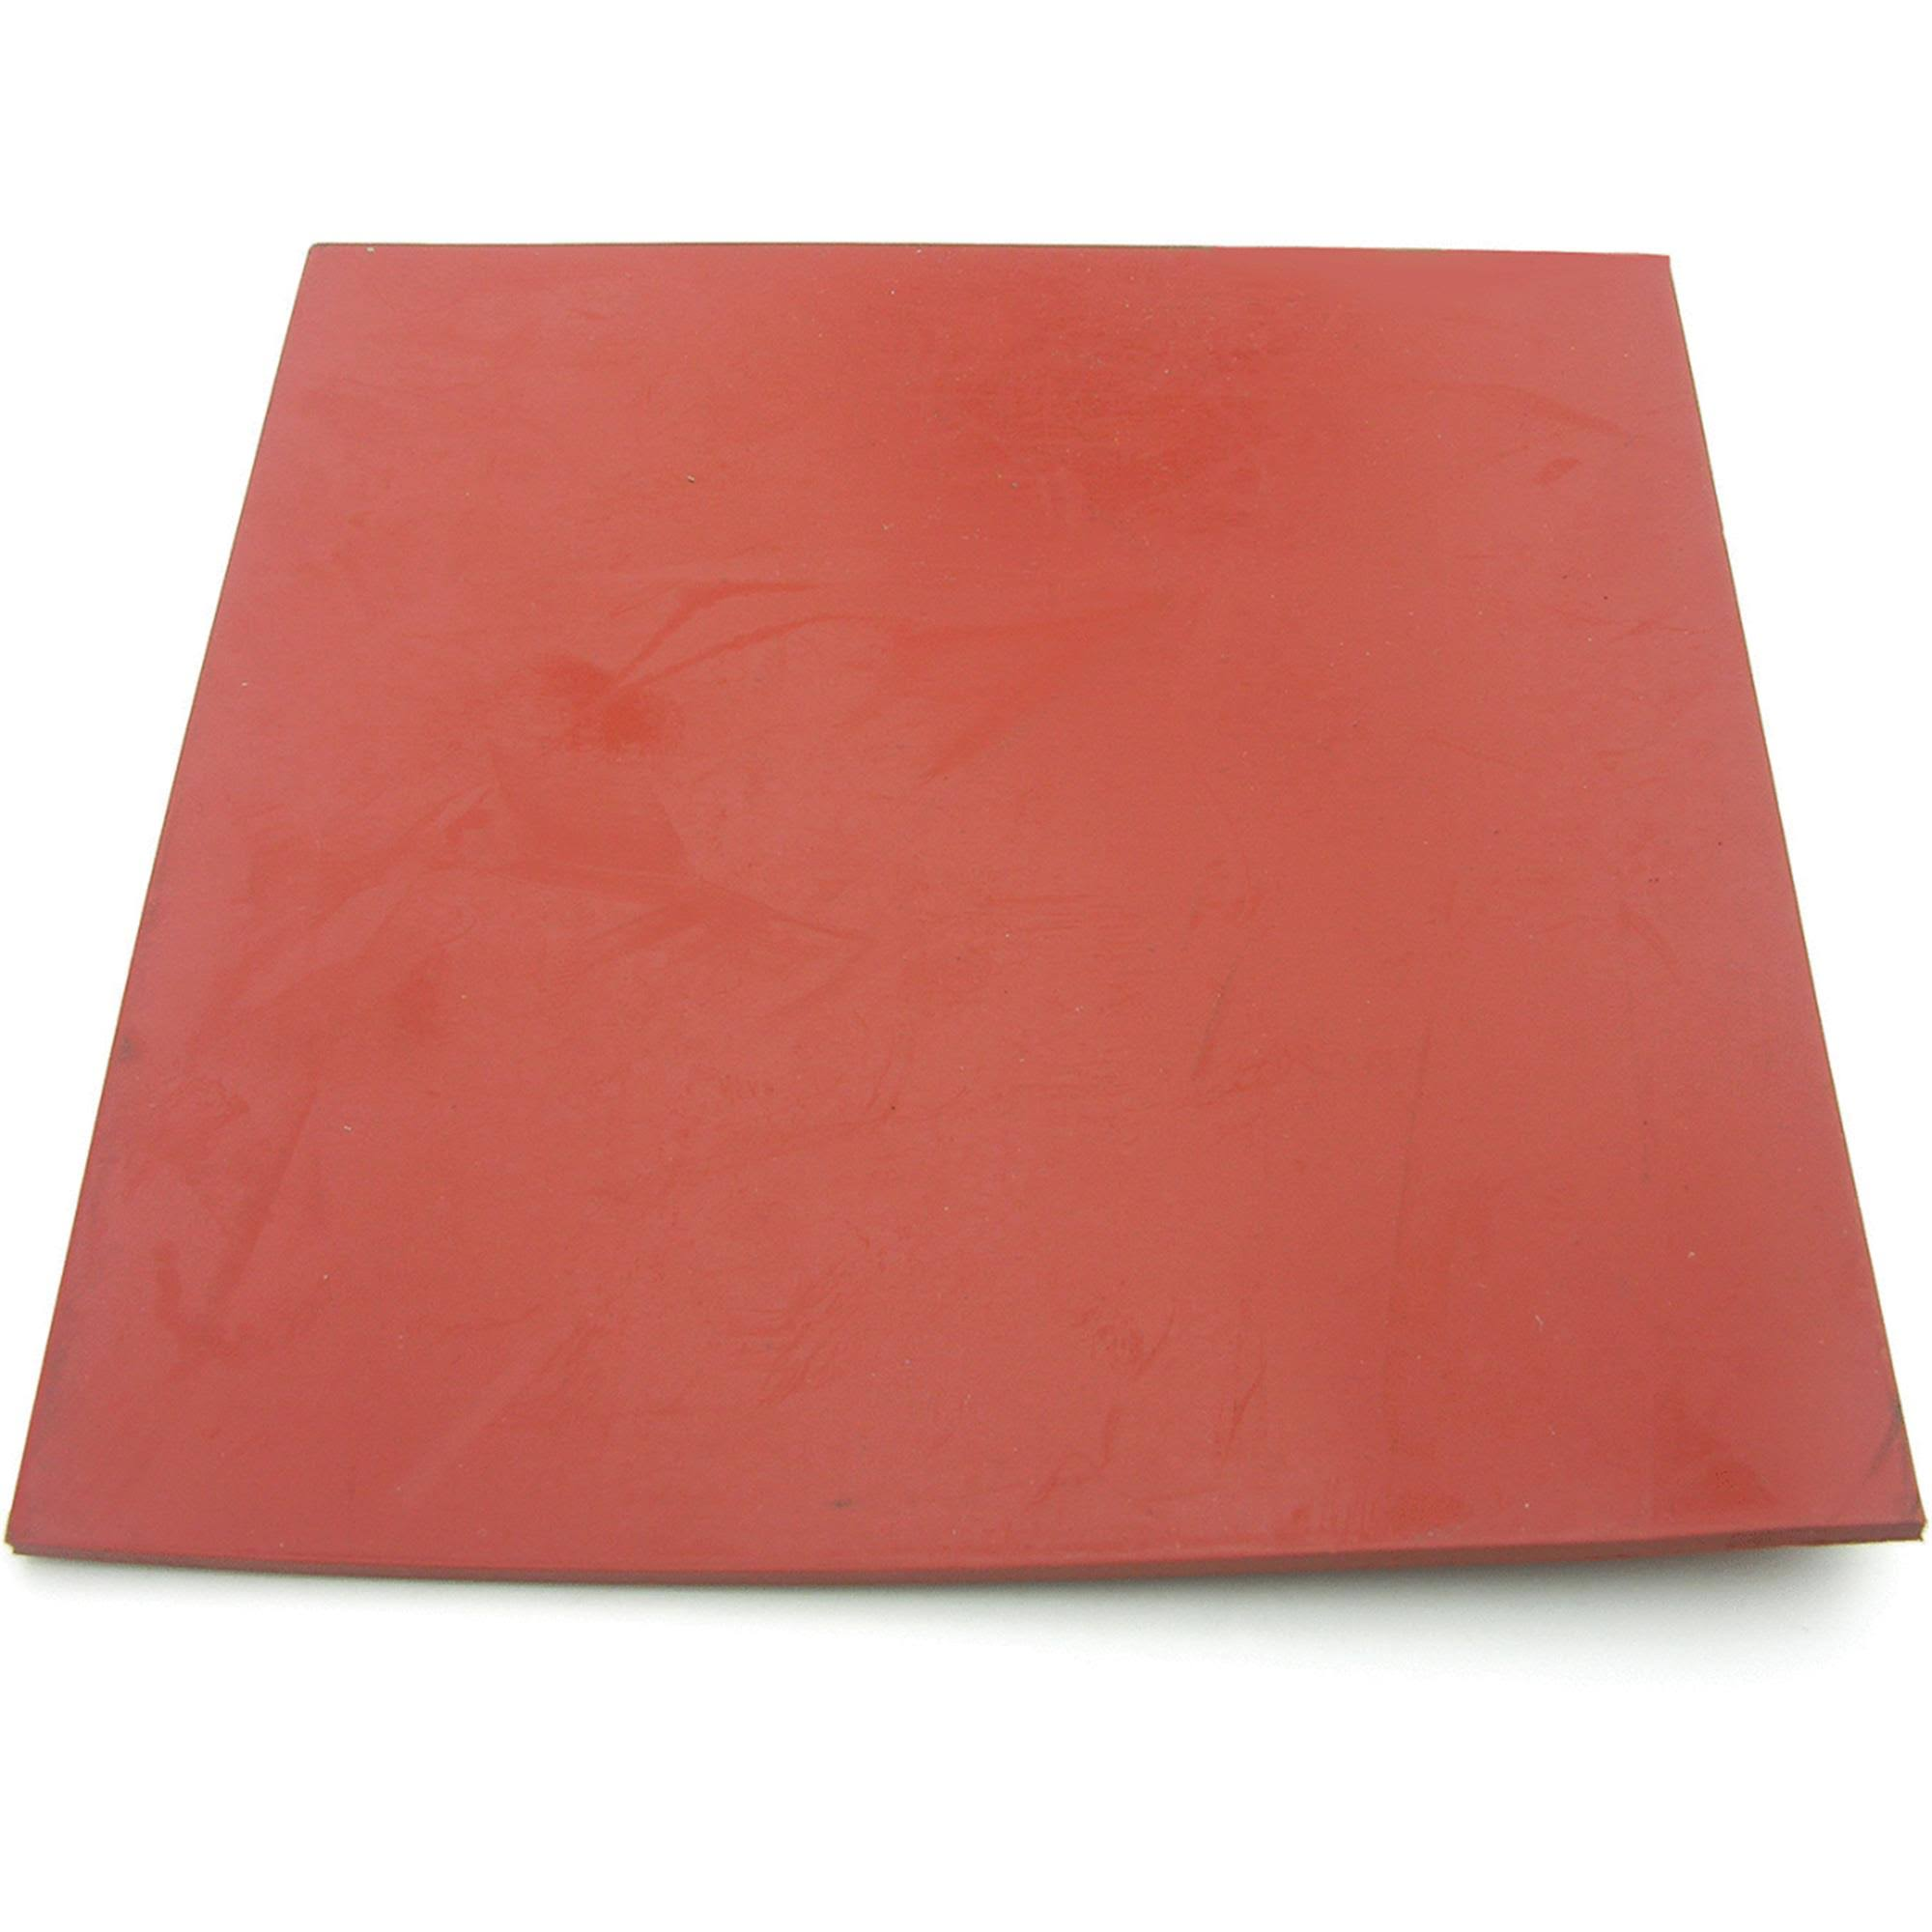 Lasco Red Rubber Sheet